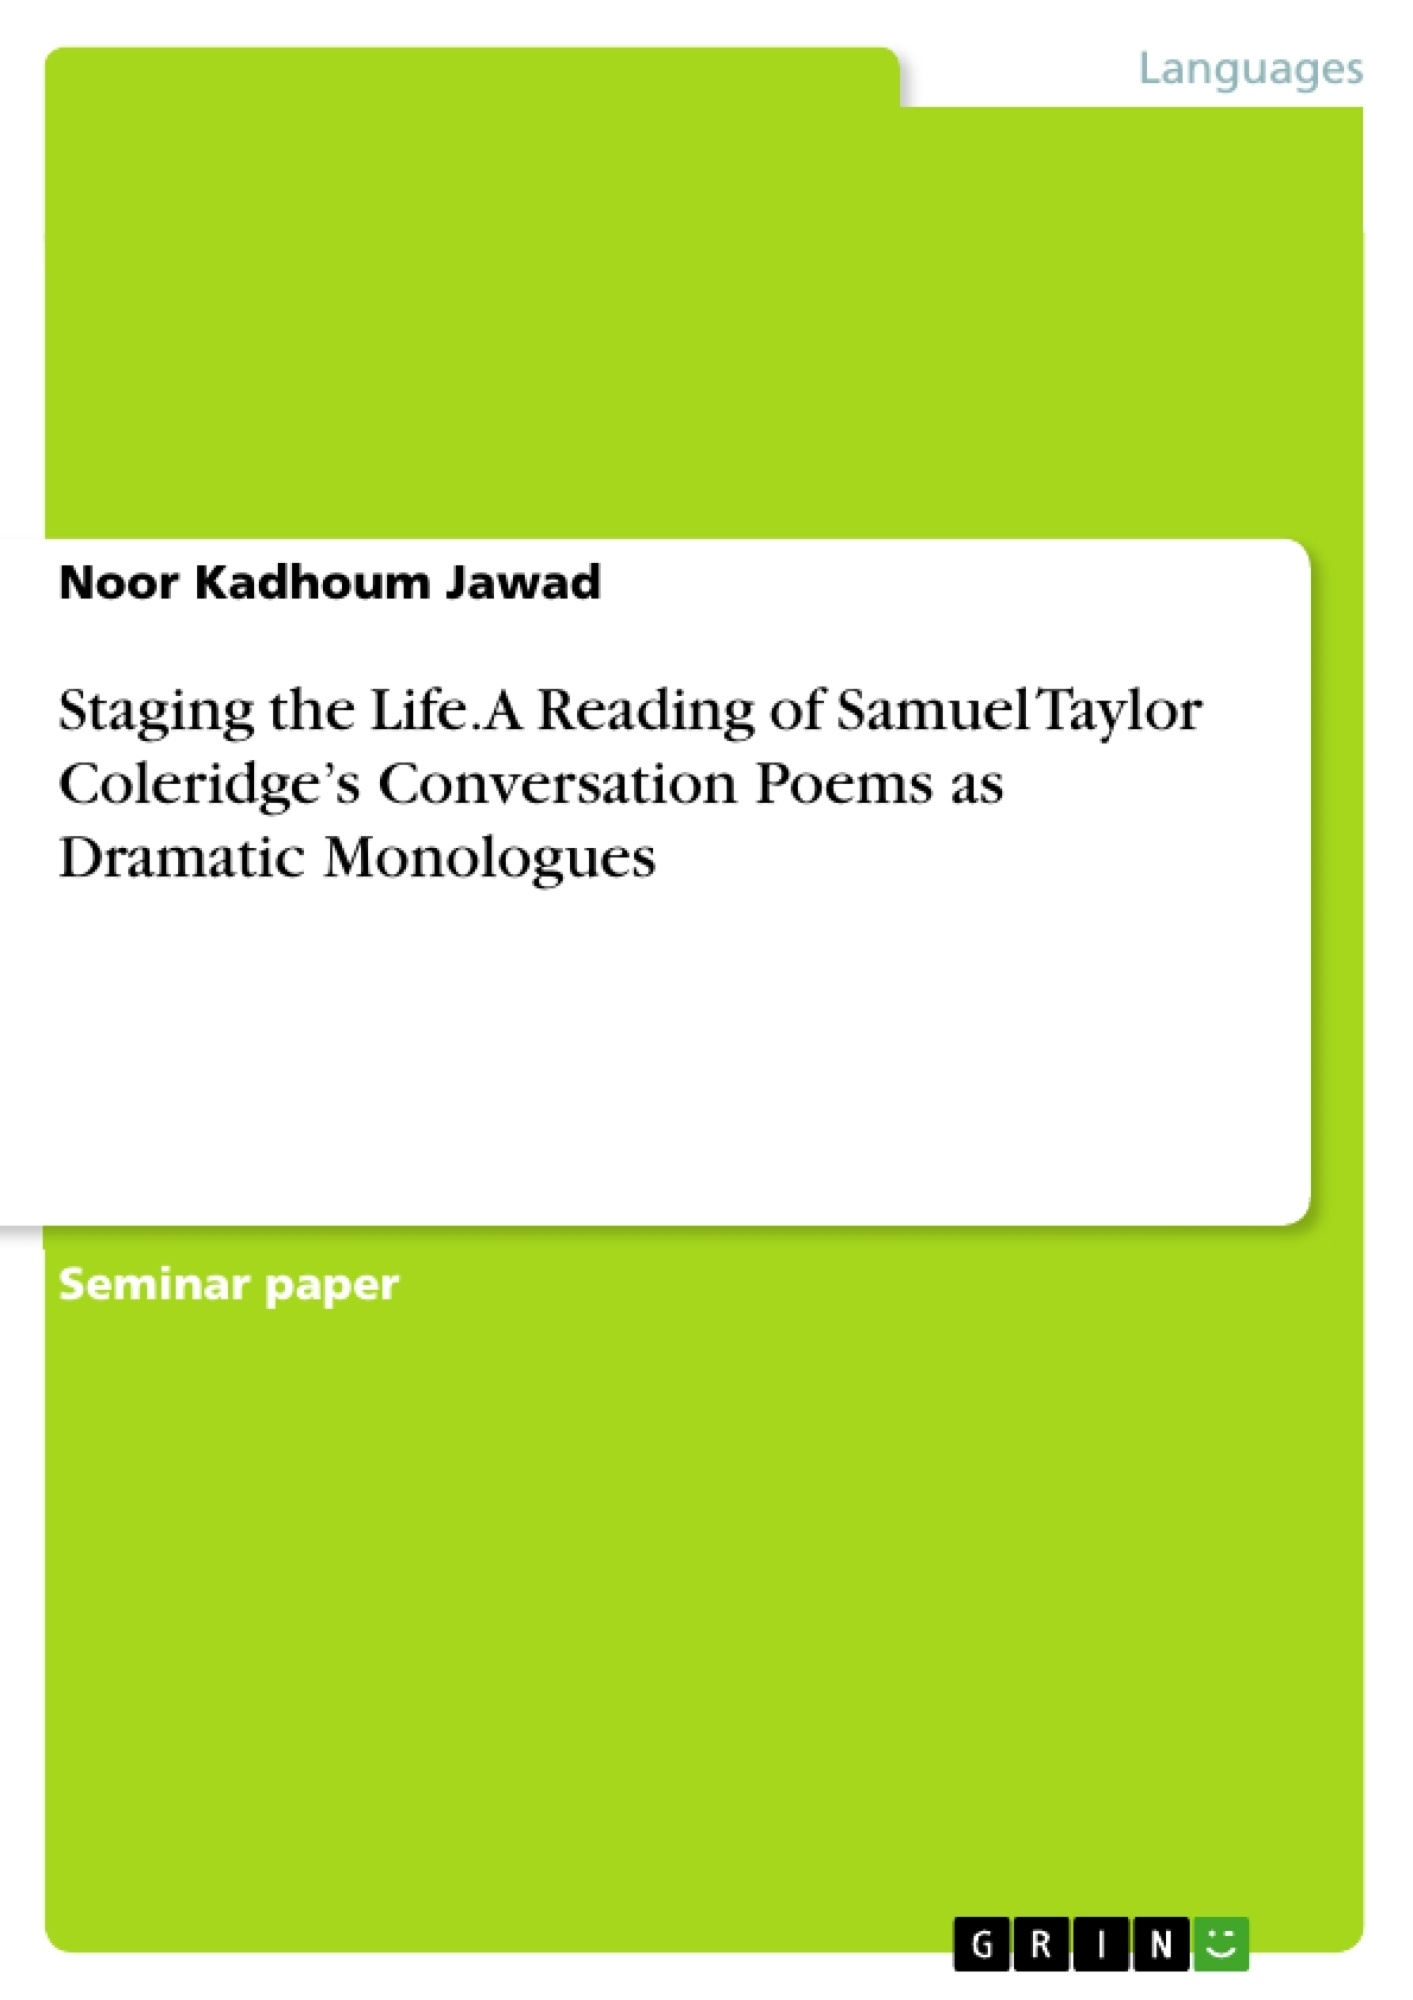 Title: Staging the Life. A Reading of Samuel Taylor Coleridge's Conversation Poems as Dramatic Monologues